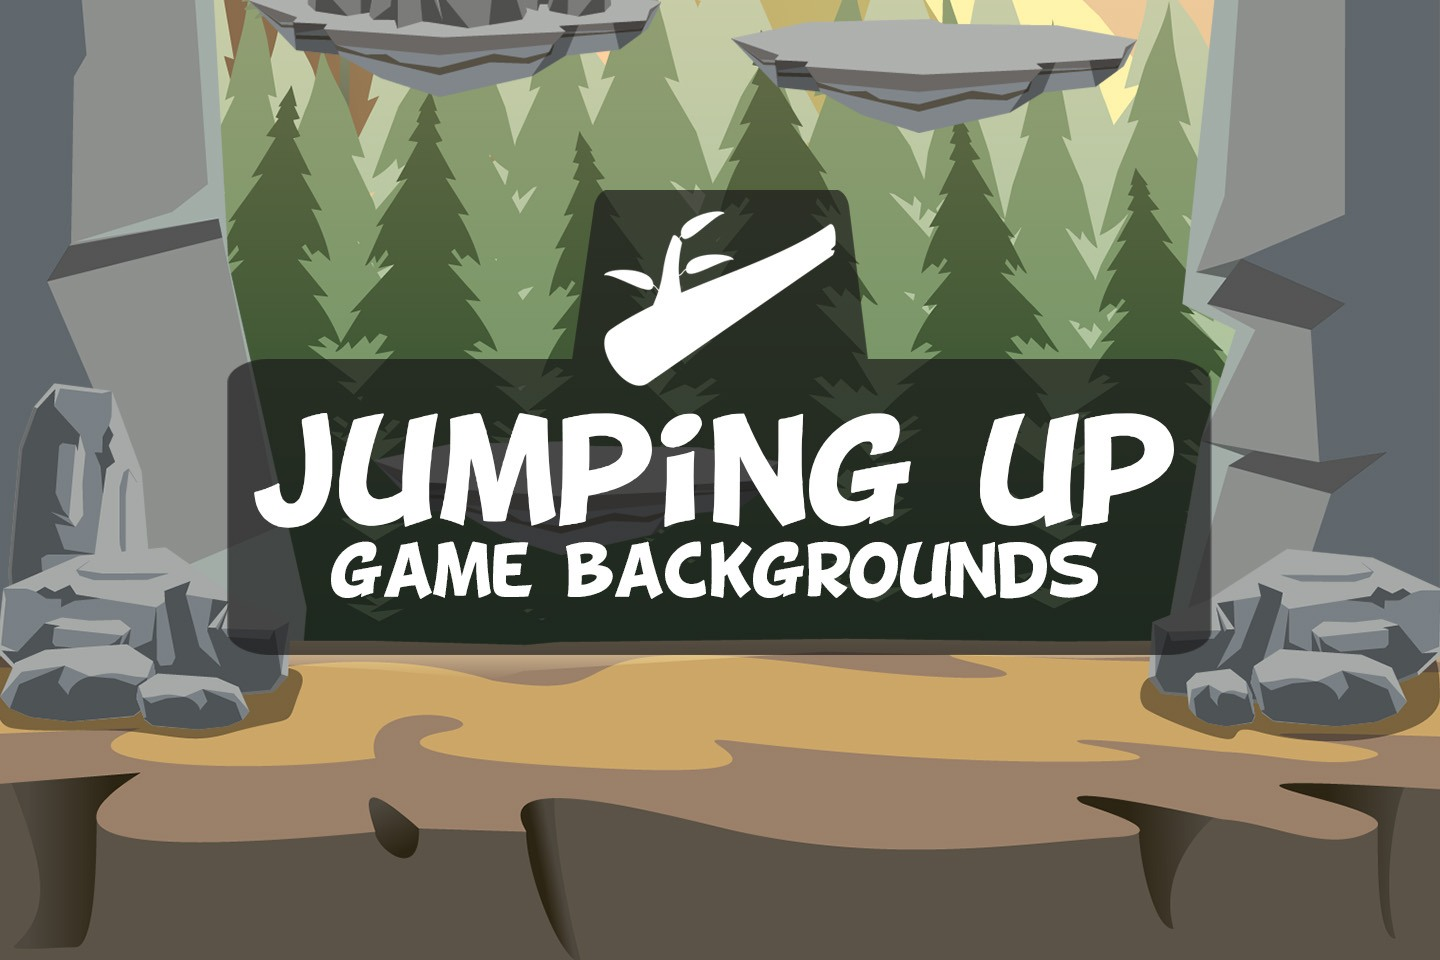 Jumping Up Game Backgrounds